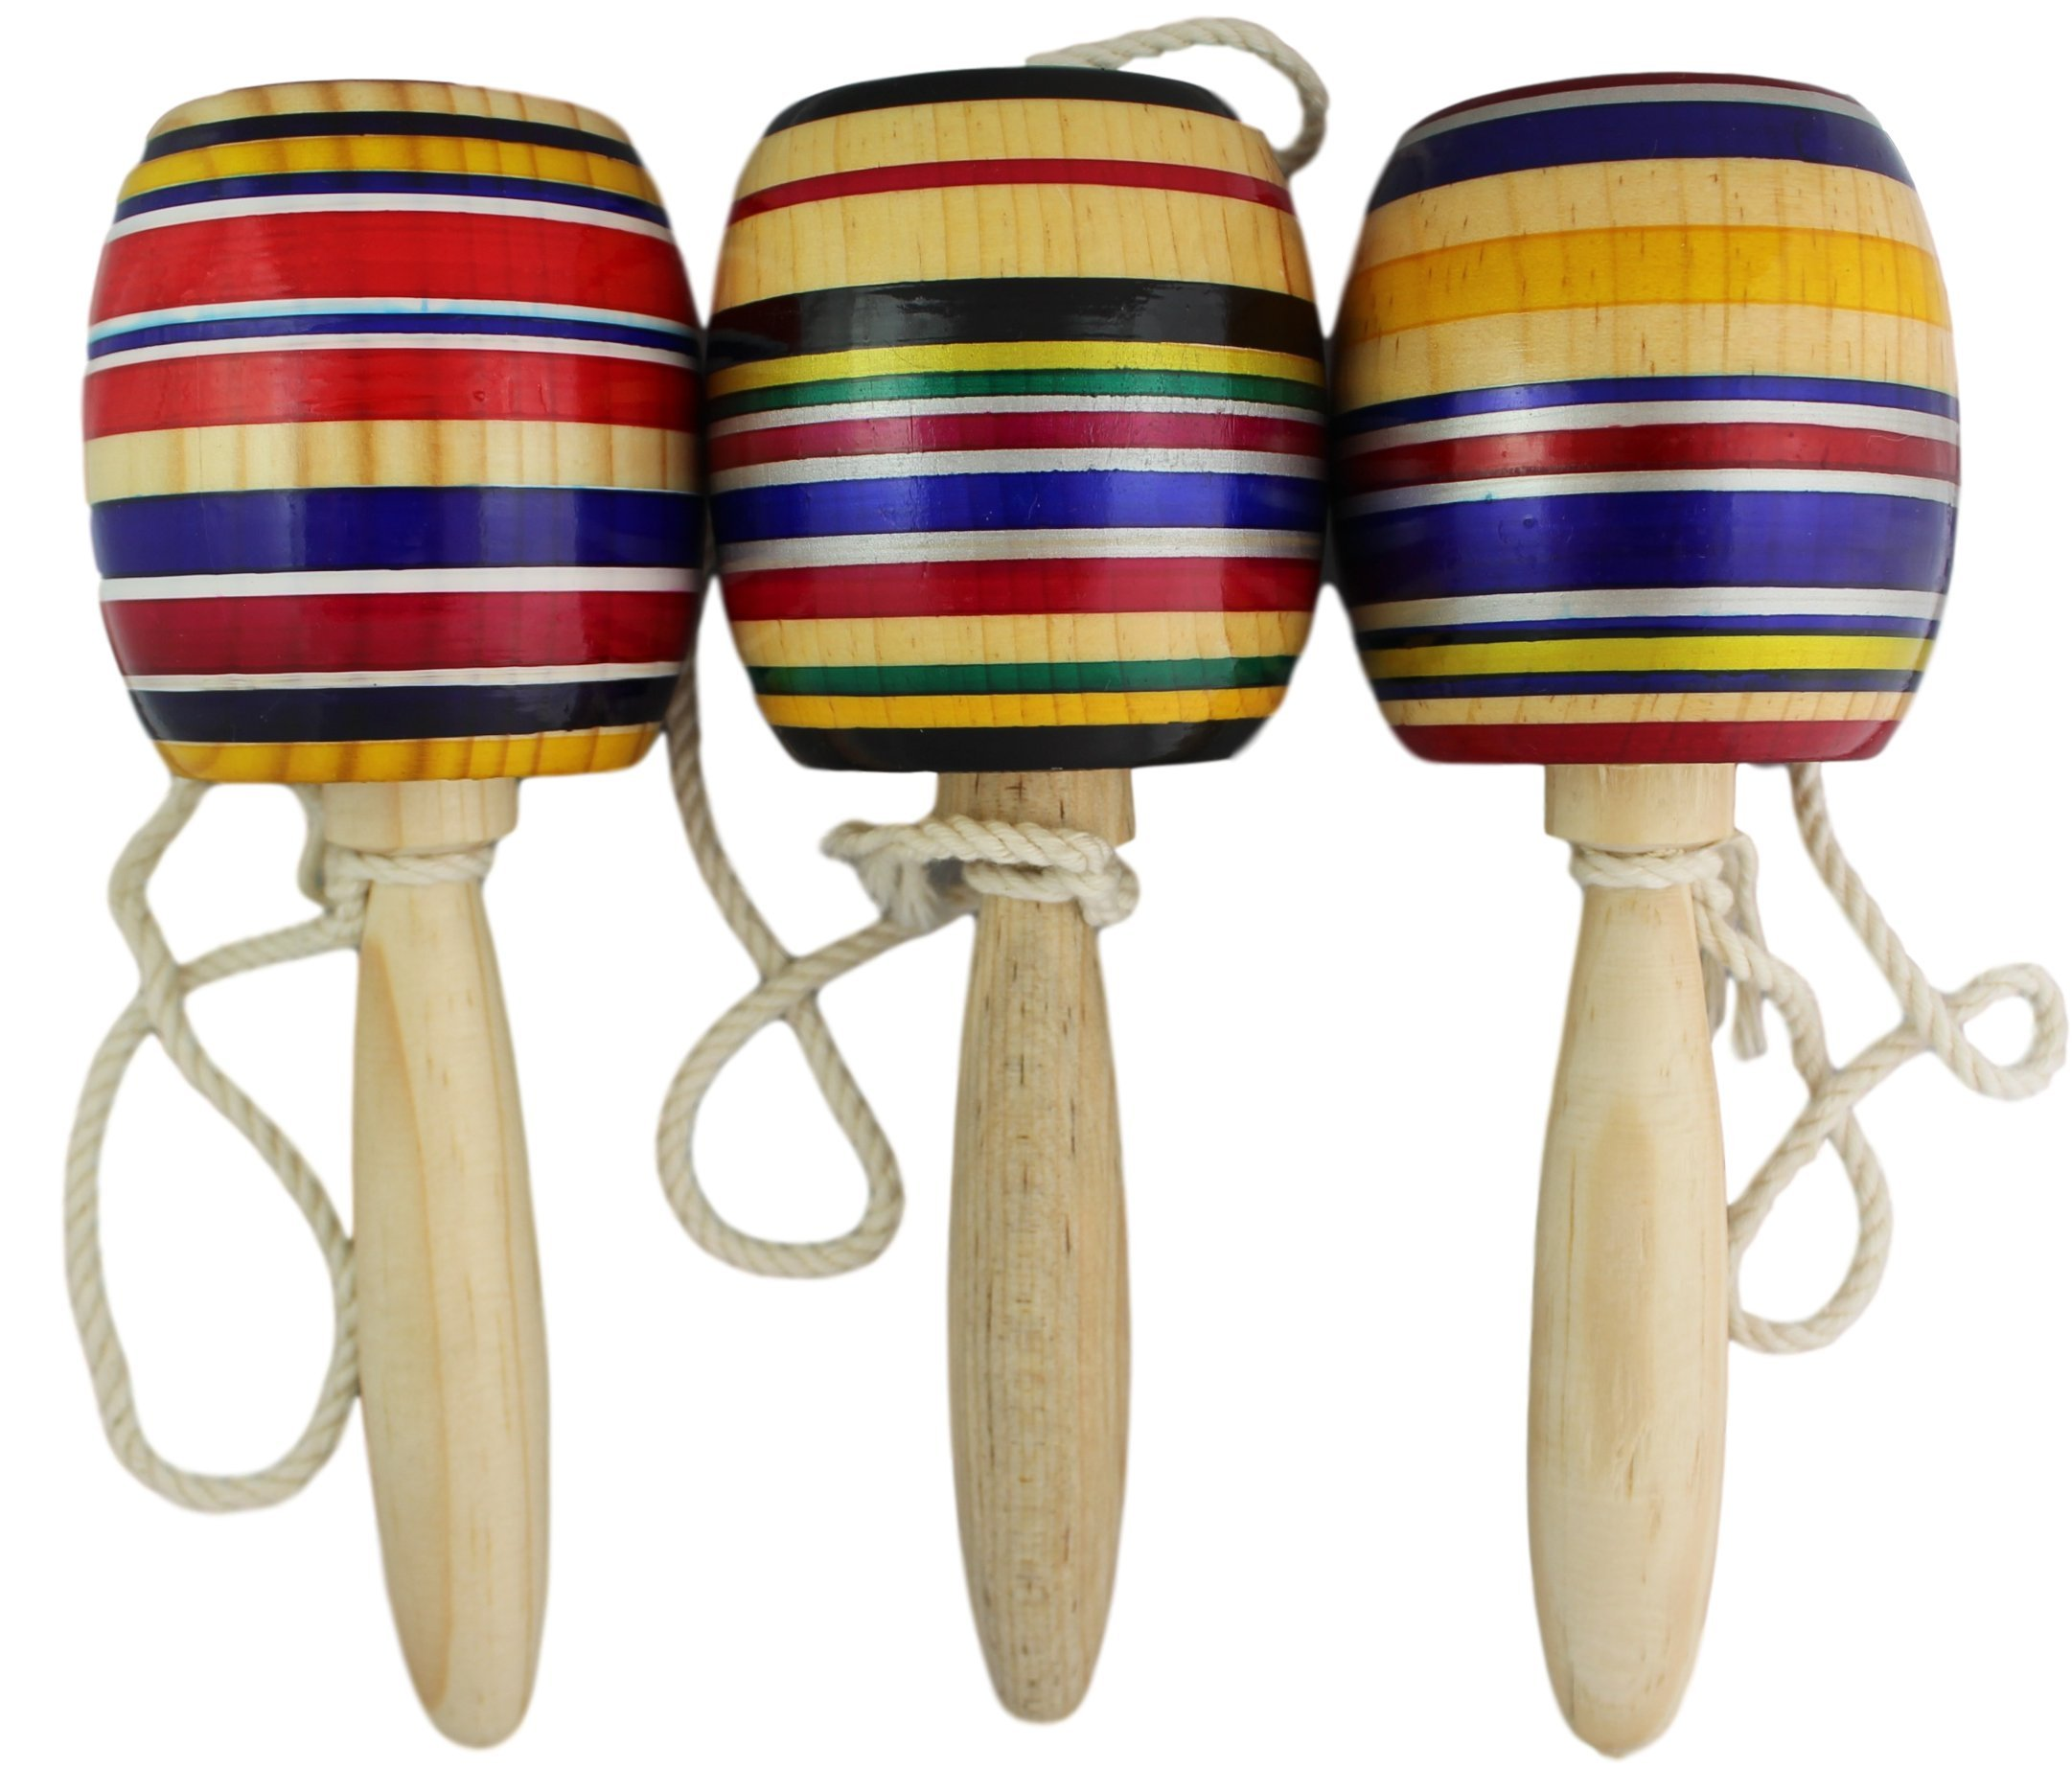 Trade MX 3 Pack Wooden Baleros Made in Mexico Premium Quality (3 Pack, Assorted Colors)